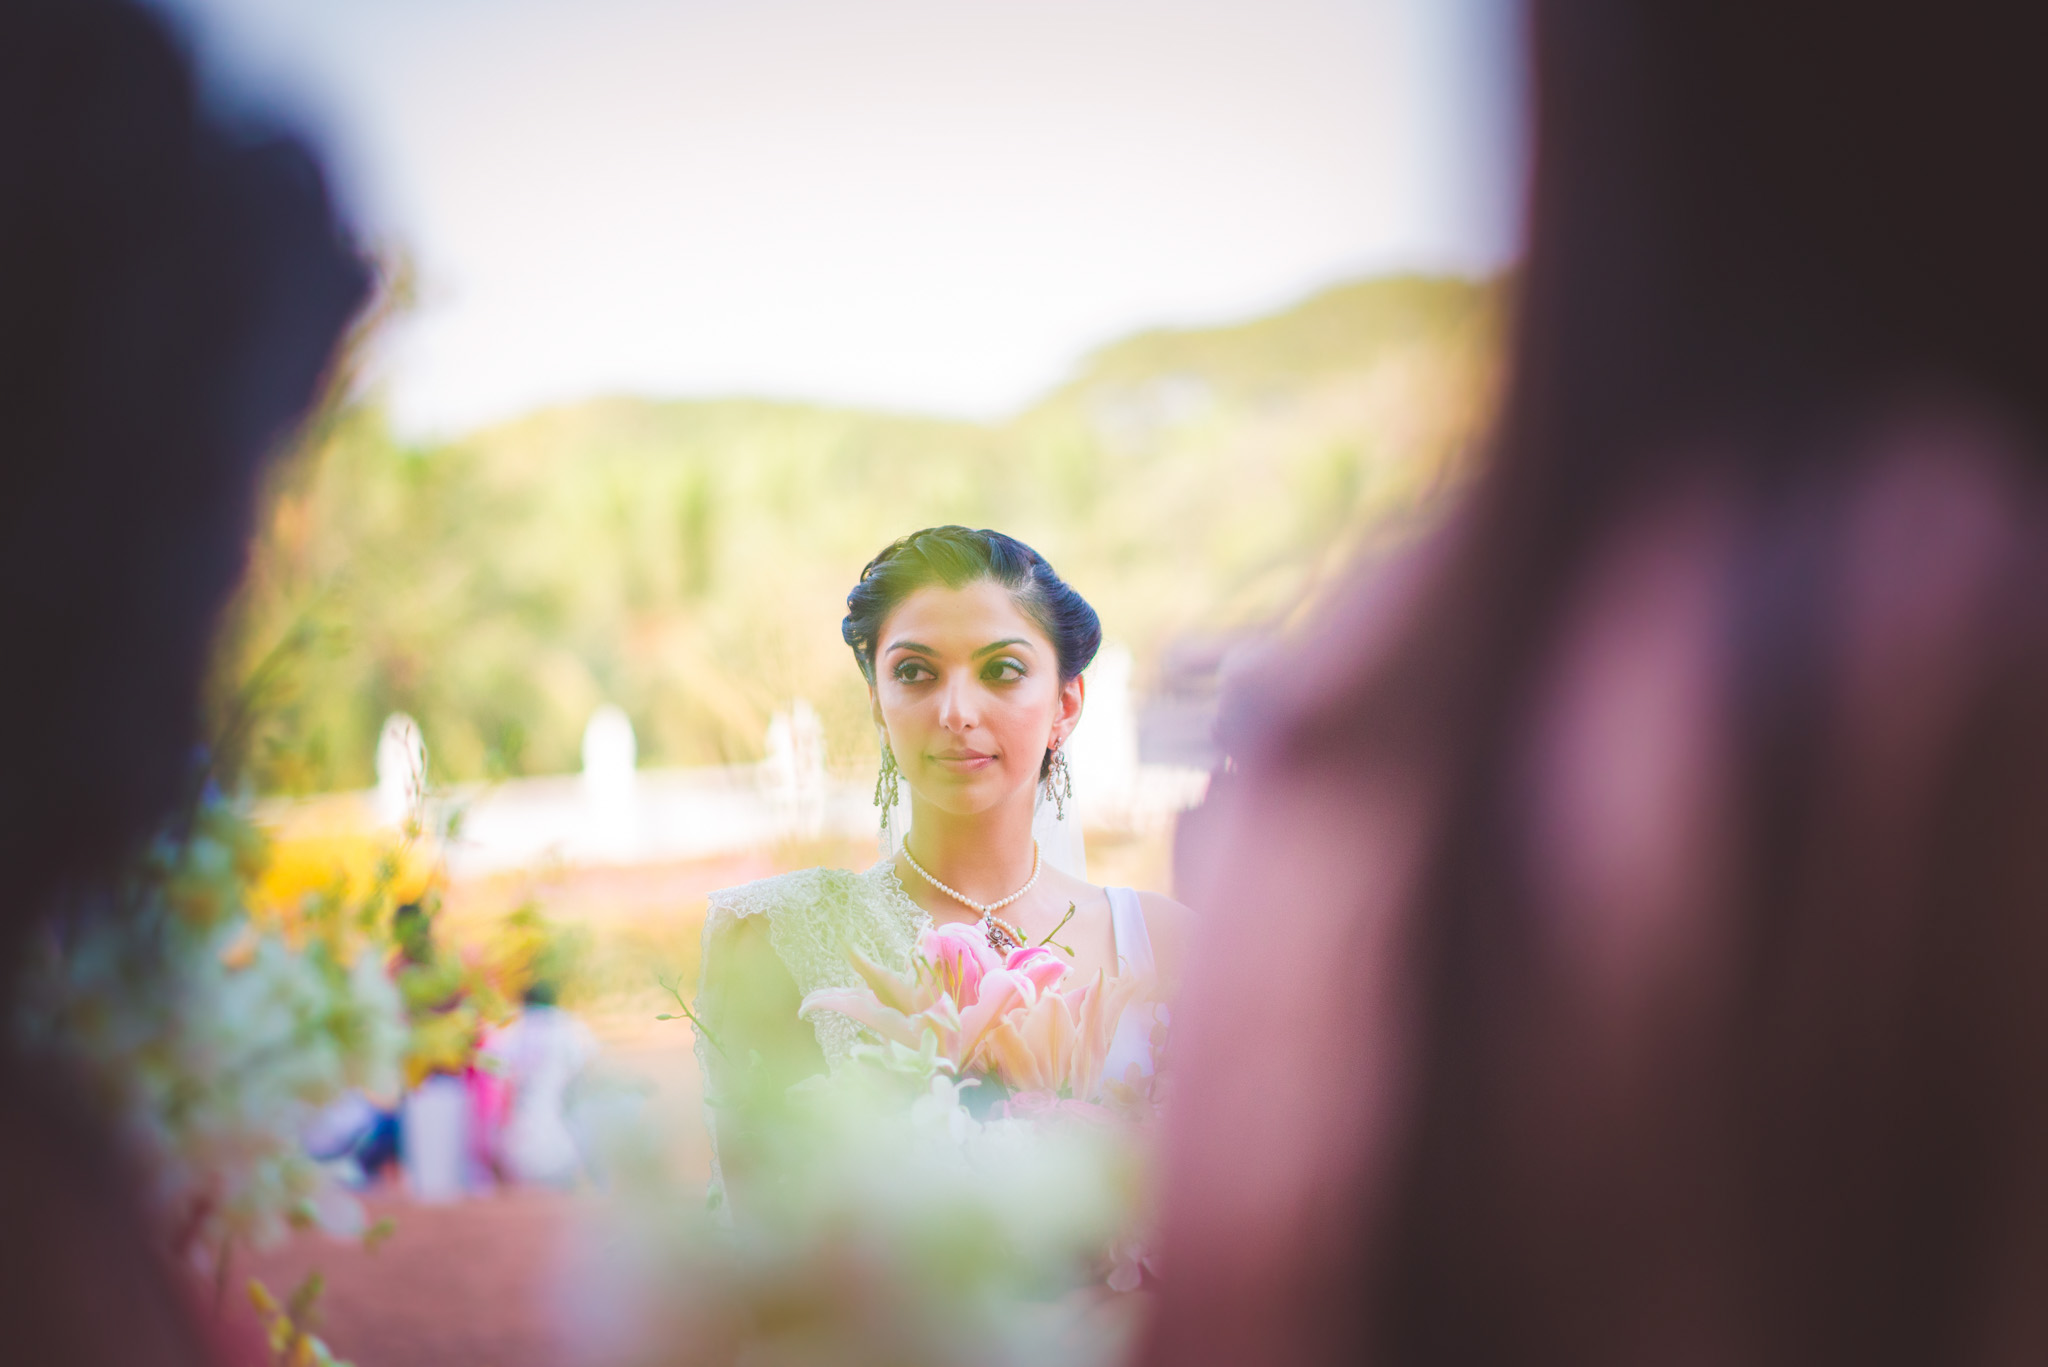 Big-Fat-Indian-Wedding-Destination-Goa-Cidade-de-goa-whatknot-candid-photography-59